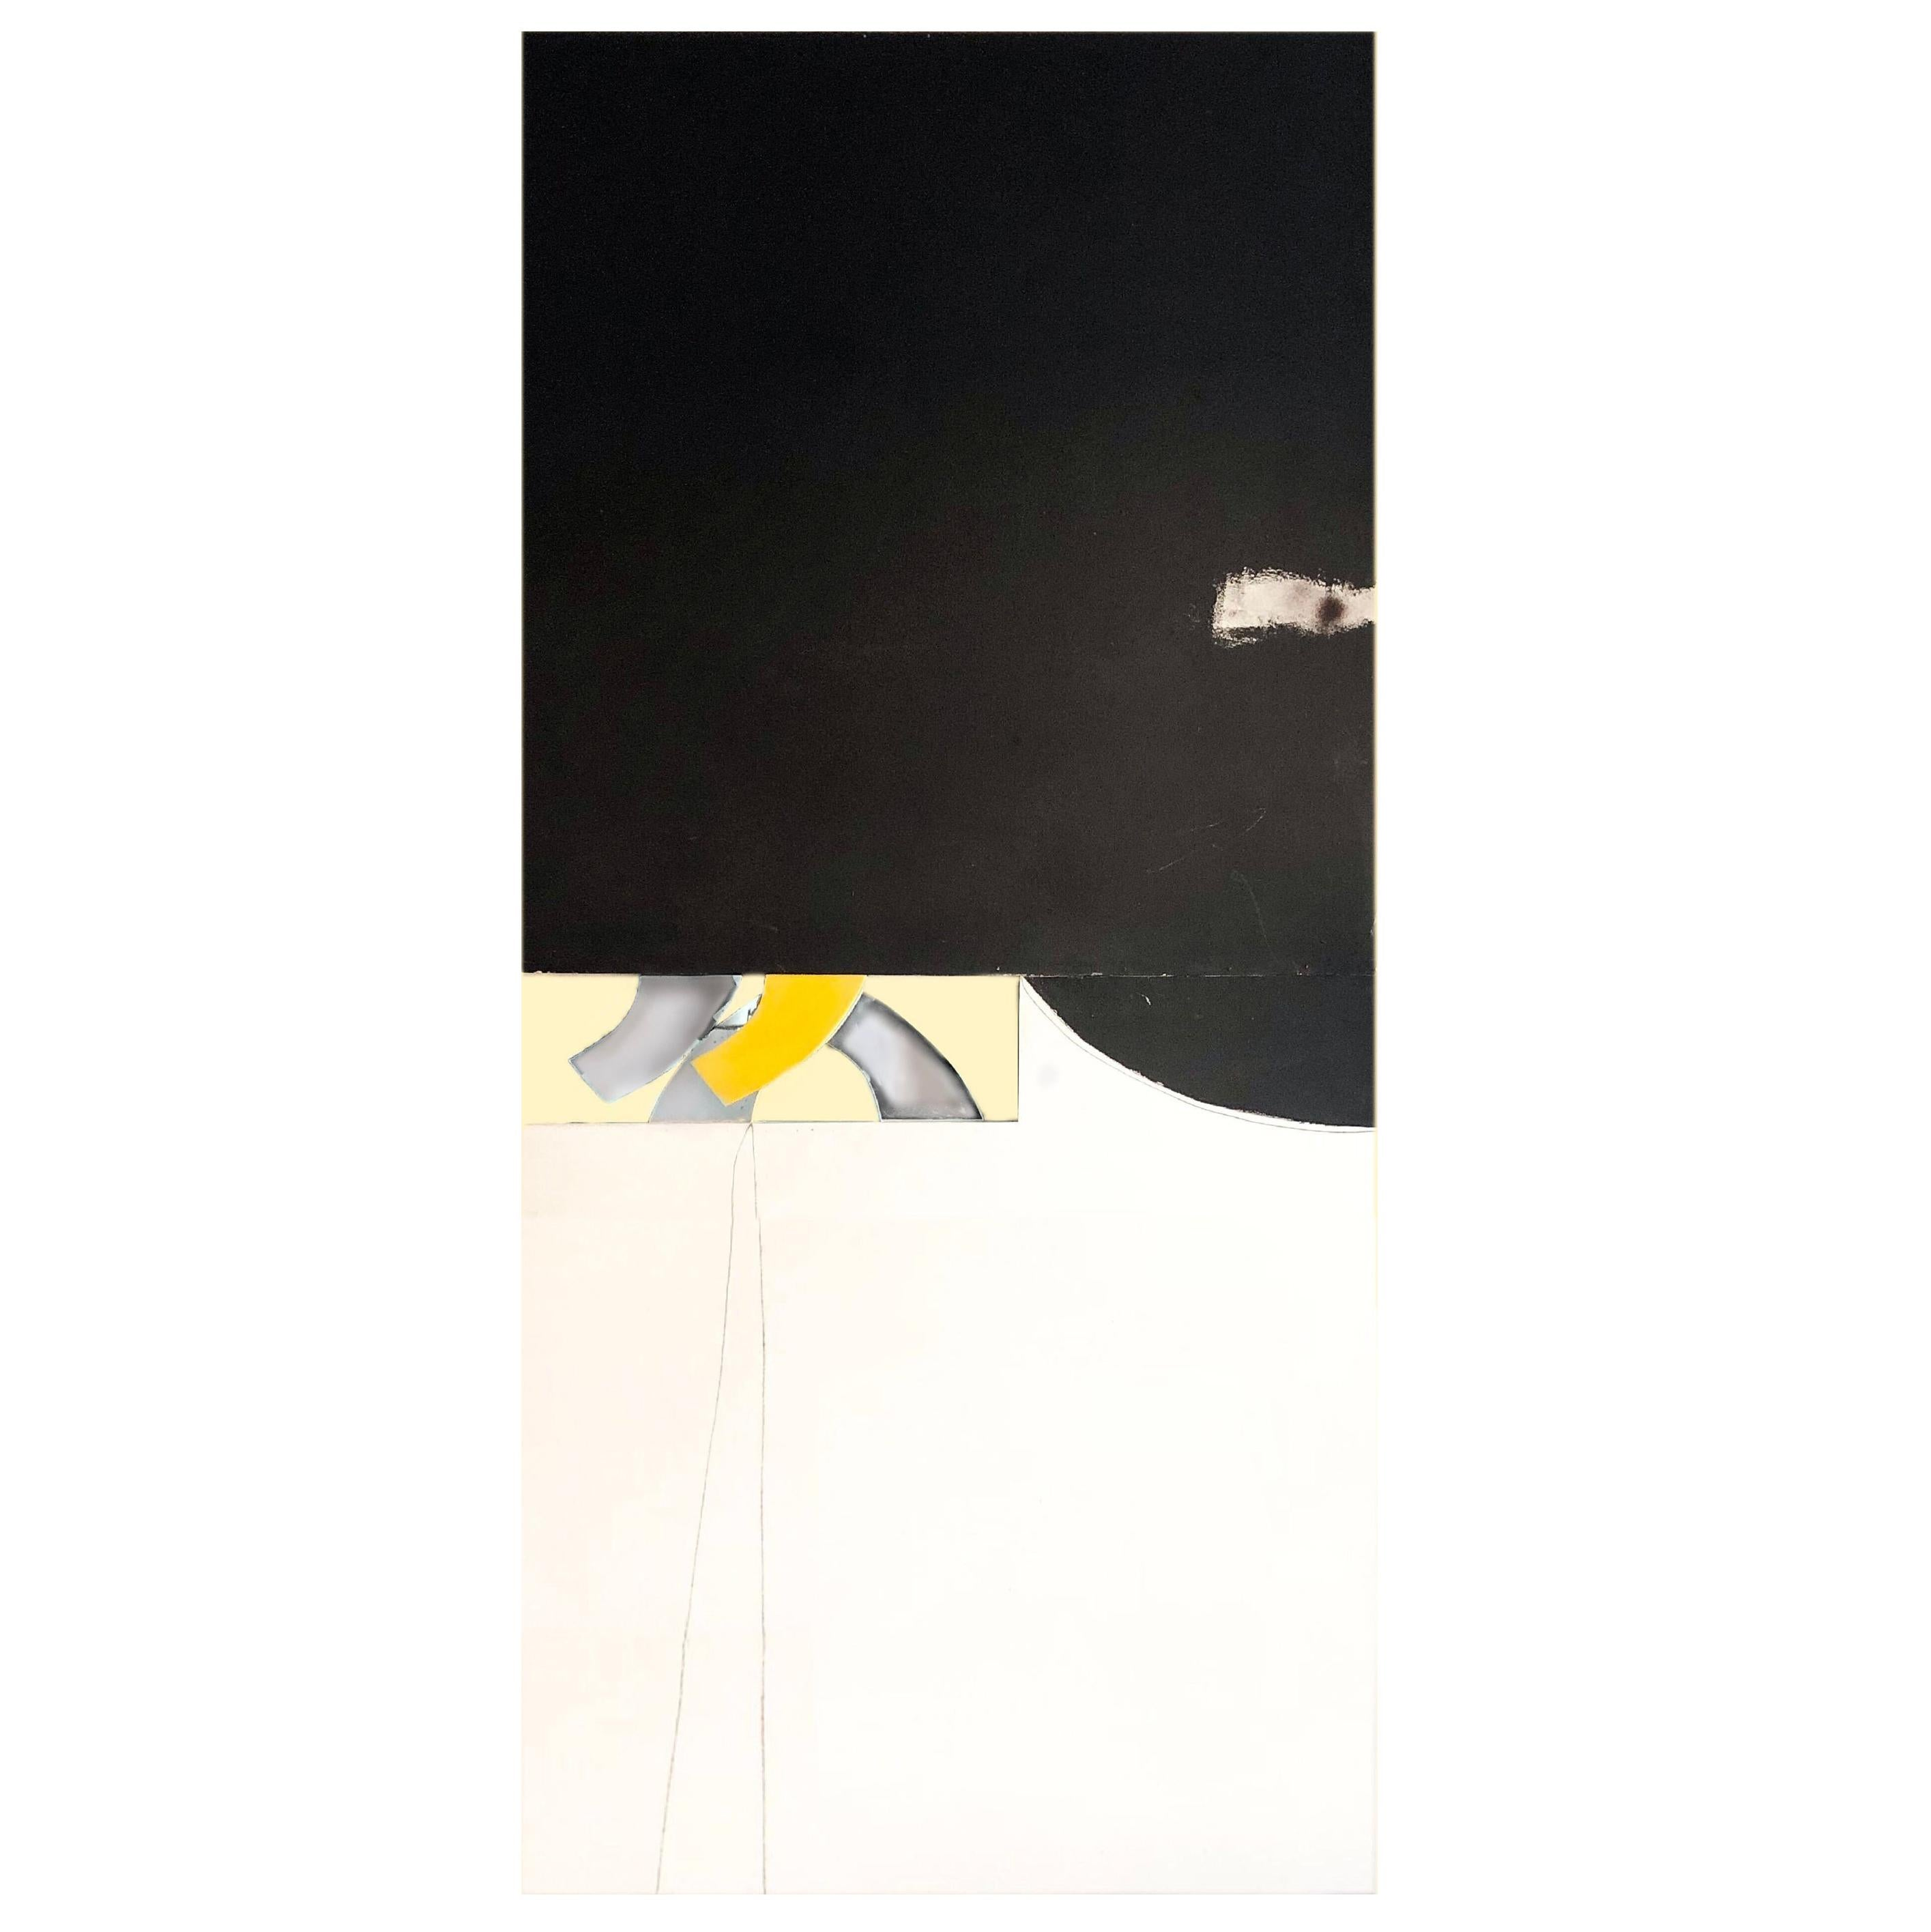 Abstract Minimalist Diptych Black & White Panel Painting Erik Atkinson Icon 1971